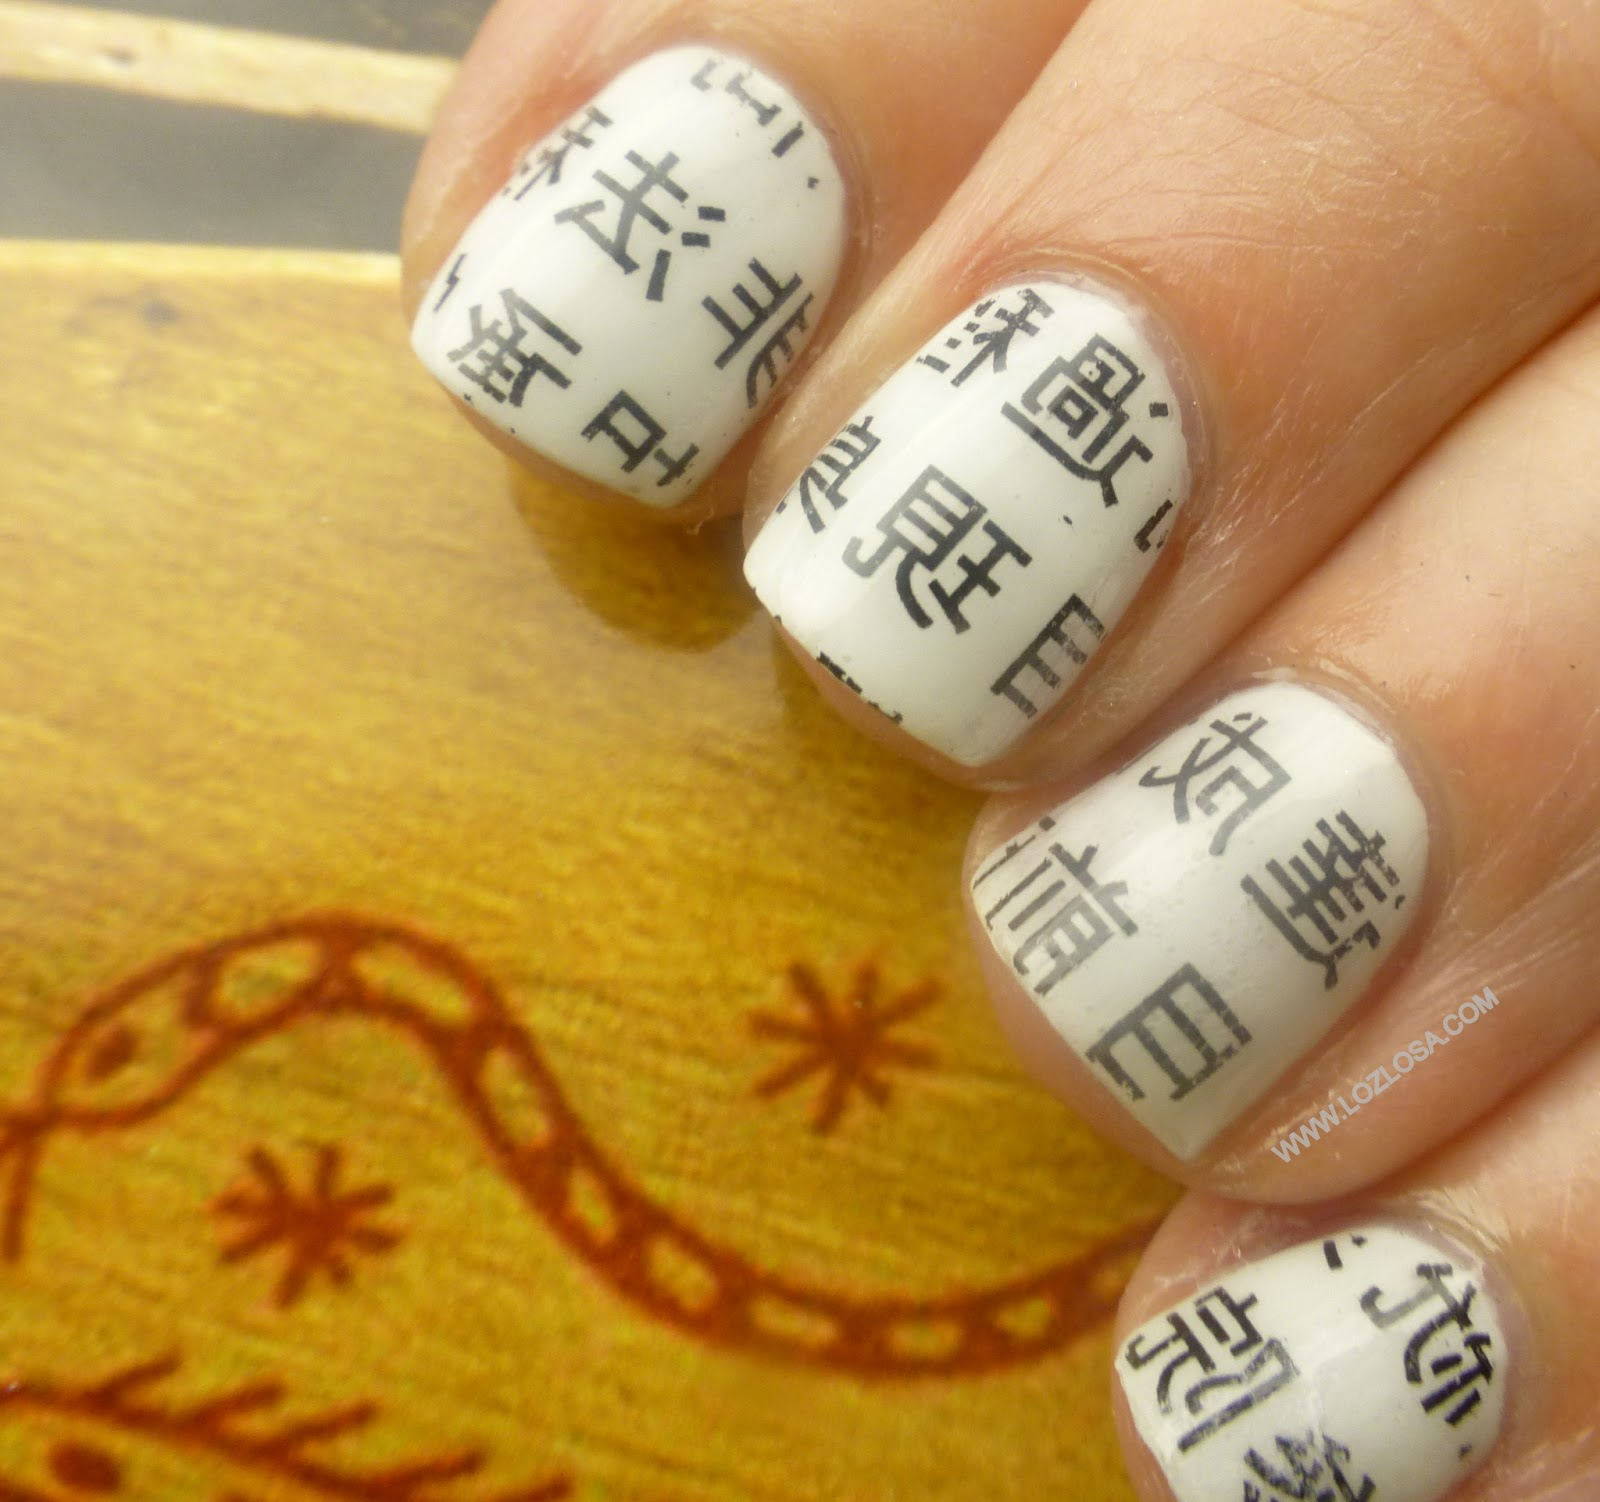 How To Do Newsprint Or Newspaper Nails With Water And A Laser Printer